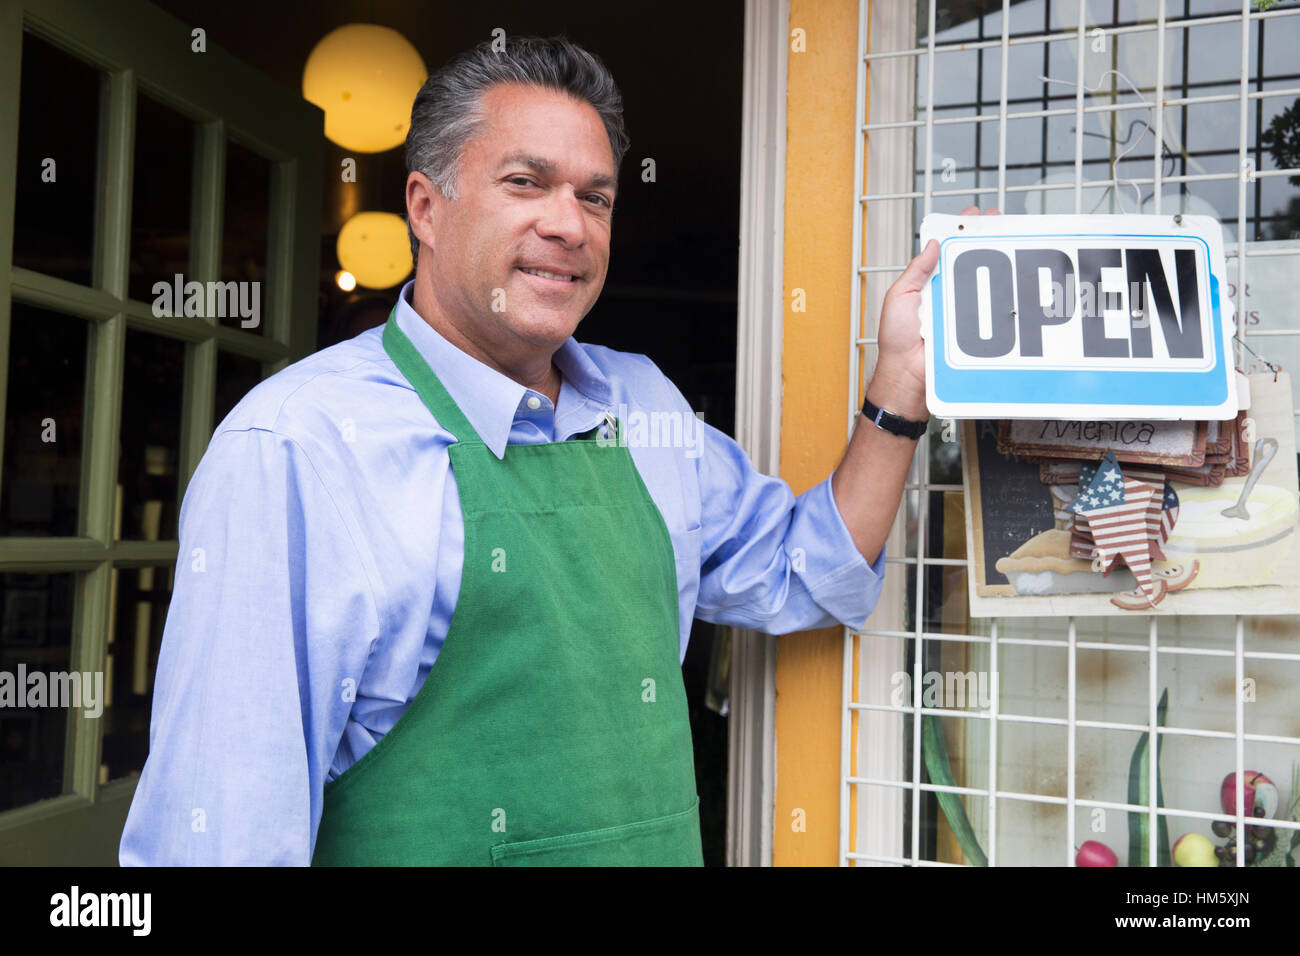 Portrait of male florist holding open sign - Stock Image